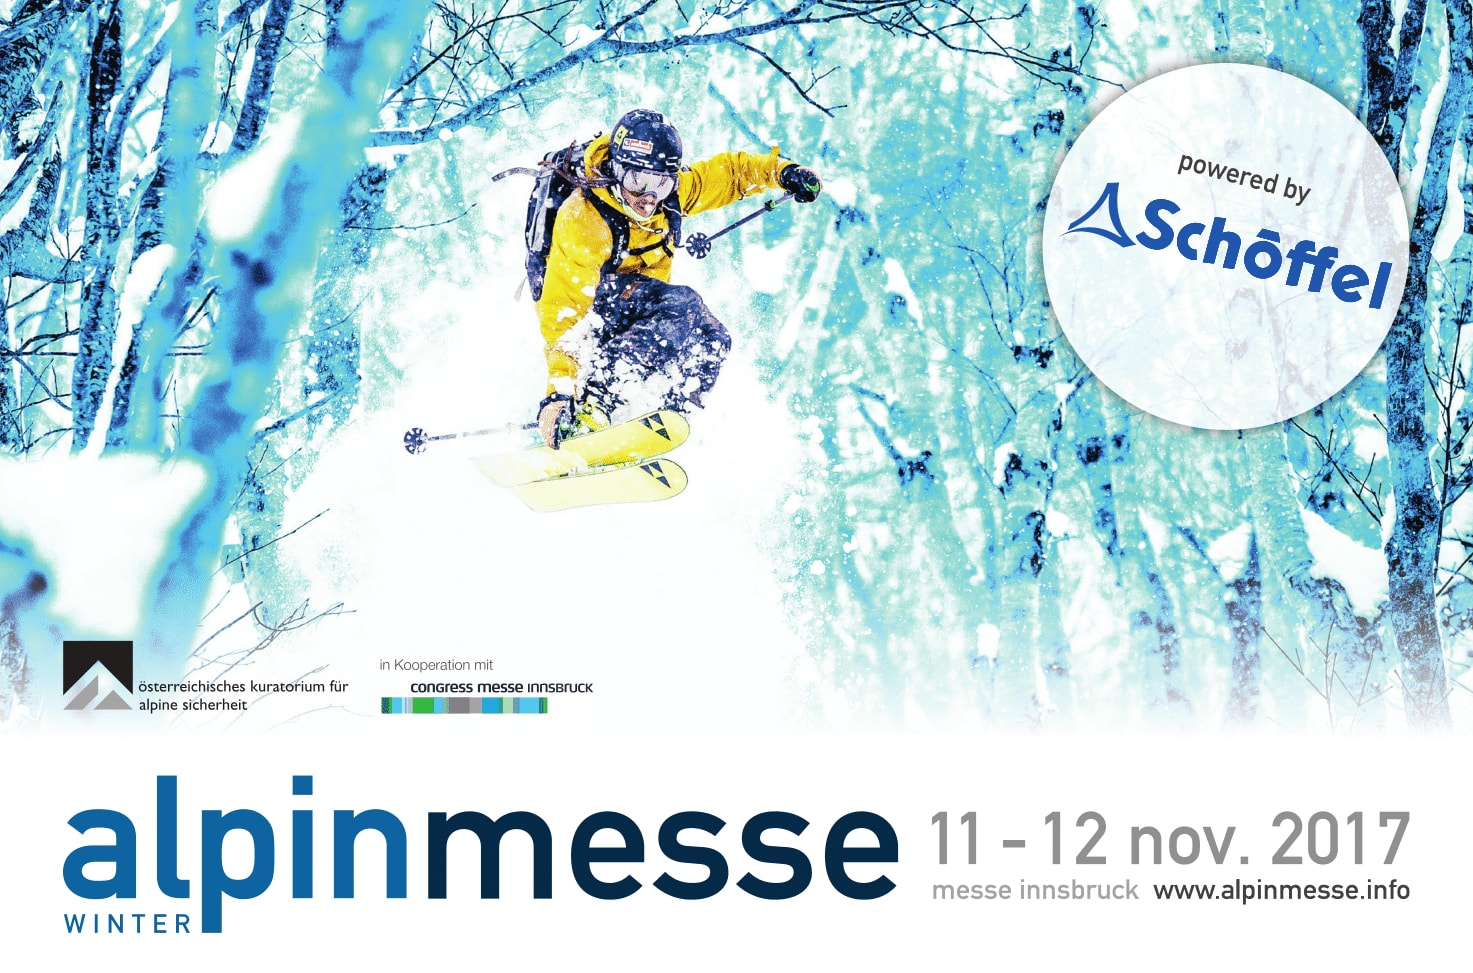 alpinmesse 2017, 11 - 12 November